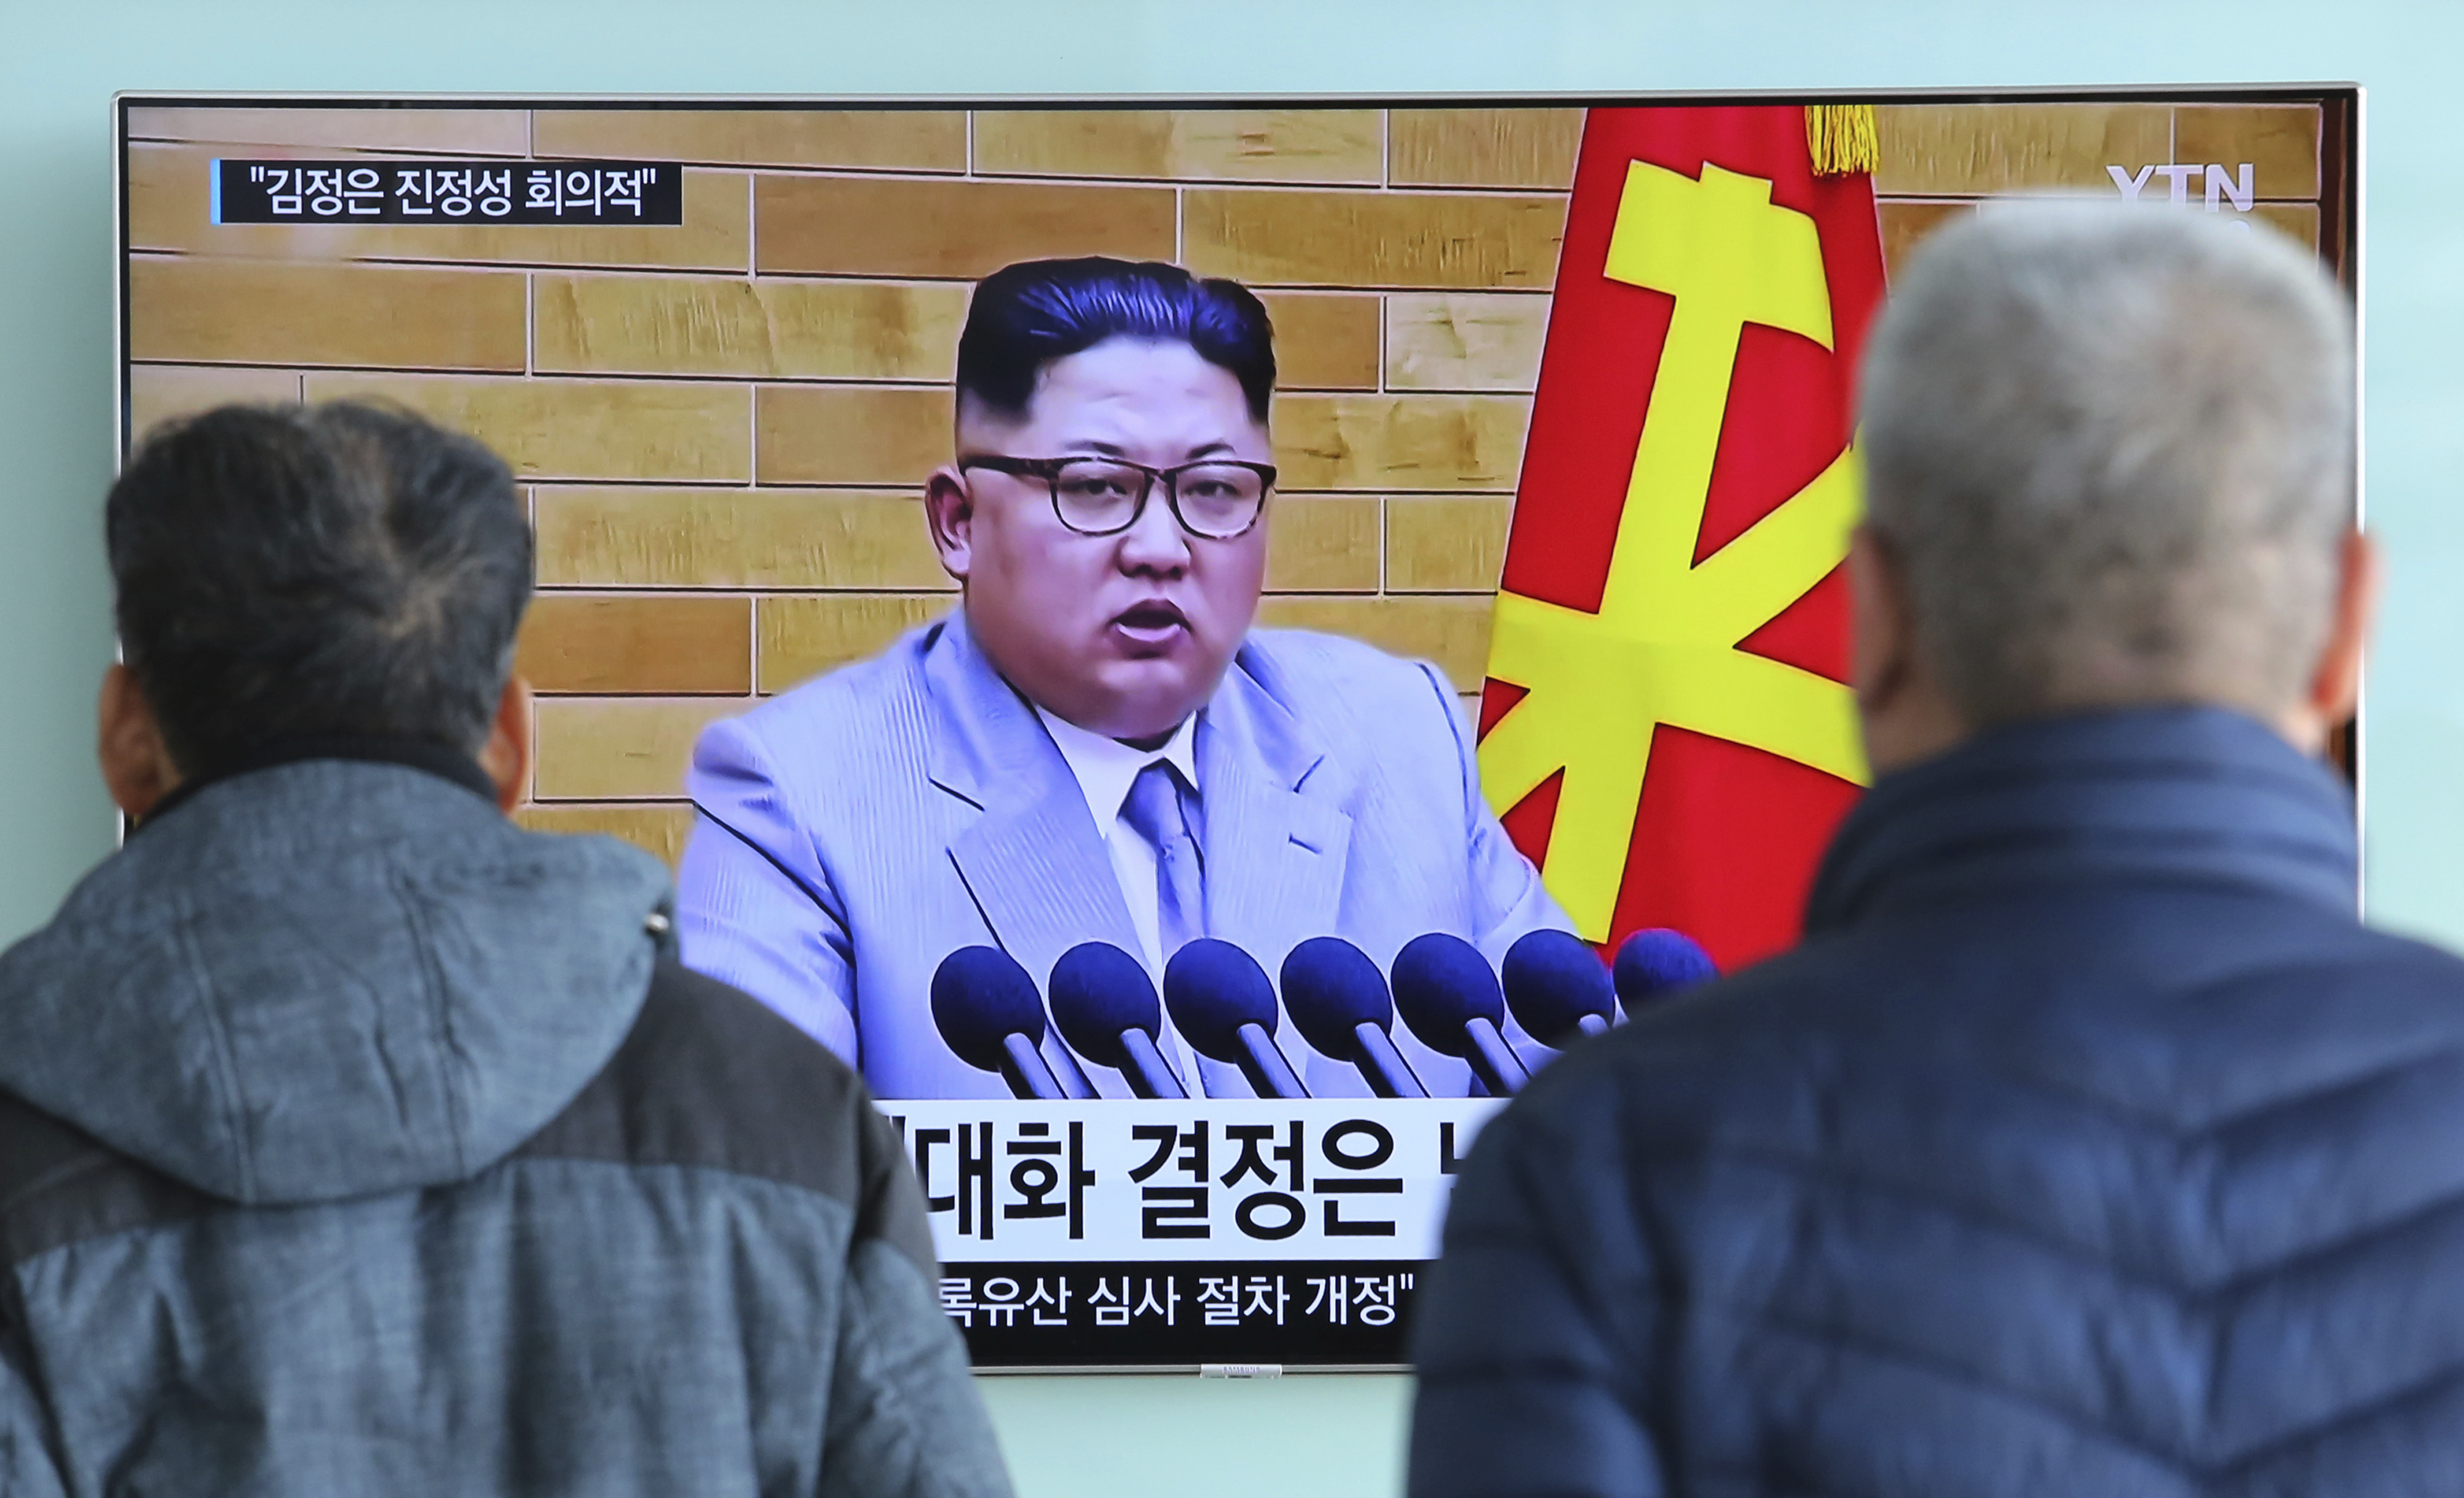 People watch a TV screen showing North Korean leader Kim Jong Un's New Year's speech, at Seoul Railway Station in Seoul, South Korea, Jan. 3, 2018. North and South Korea agreed Friday to revive their formal dialogue.